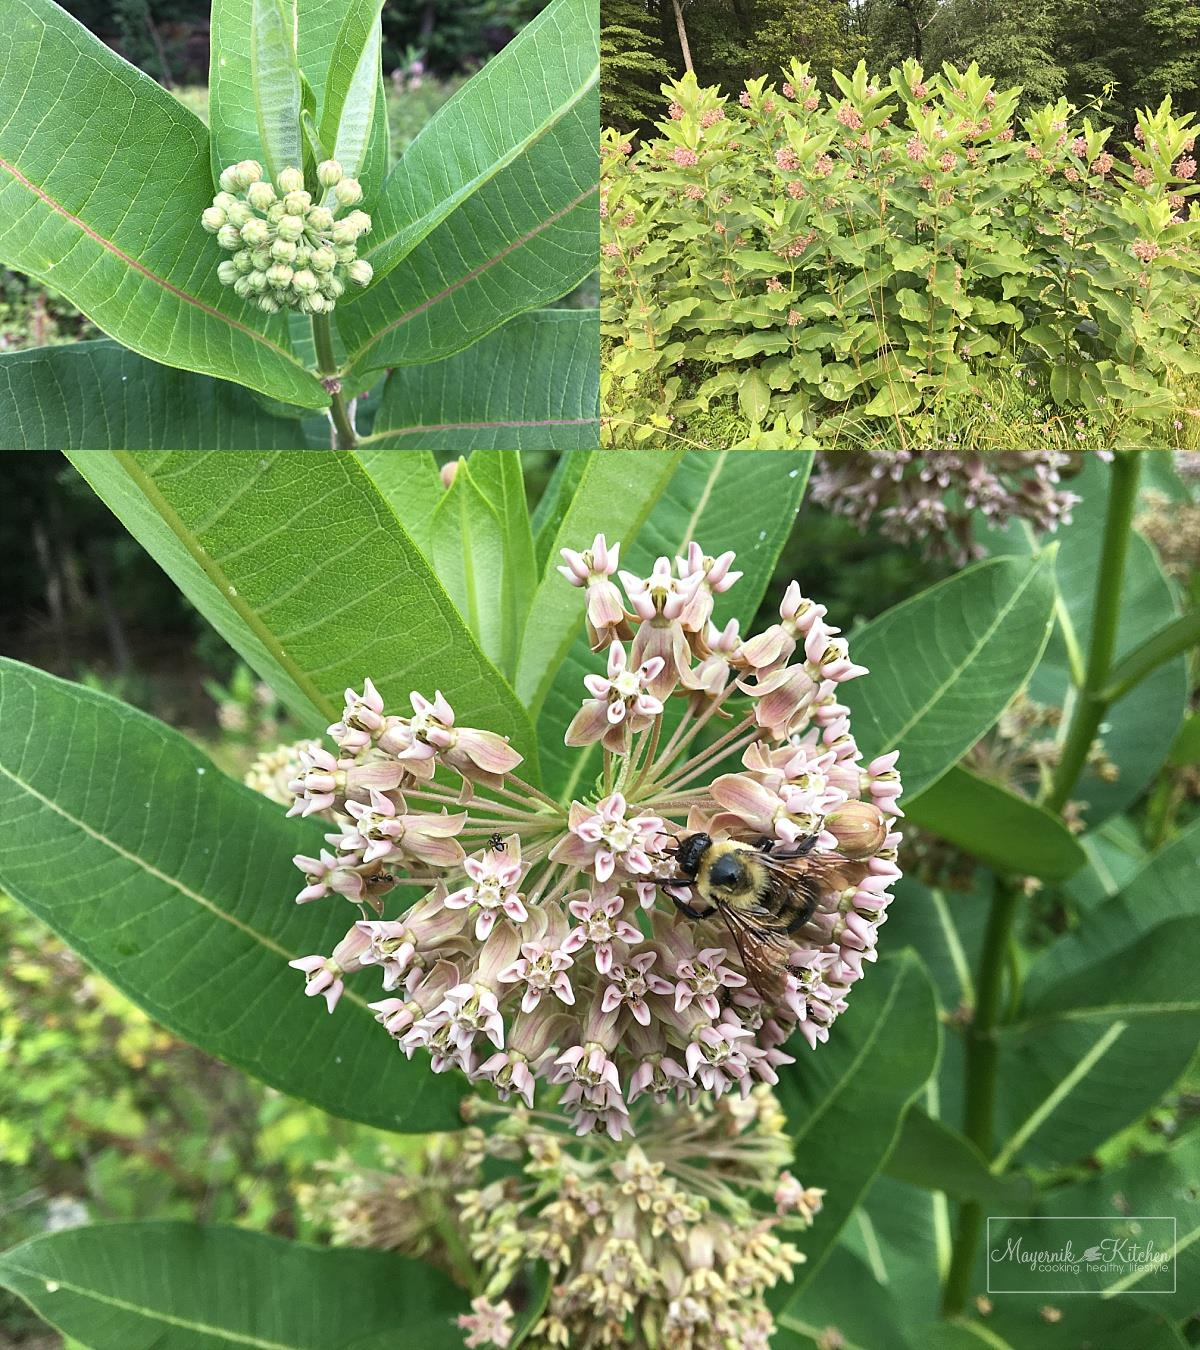 Flowering Common Milkweed - New Jersey - Mayernik Kitchen